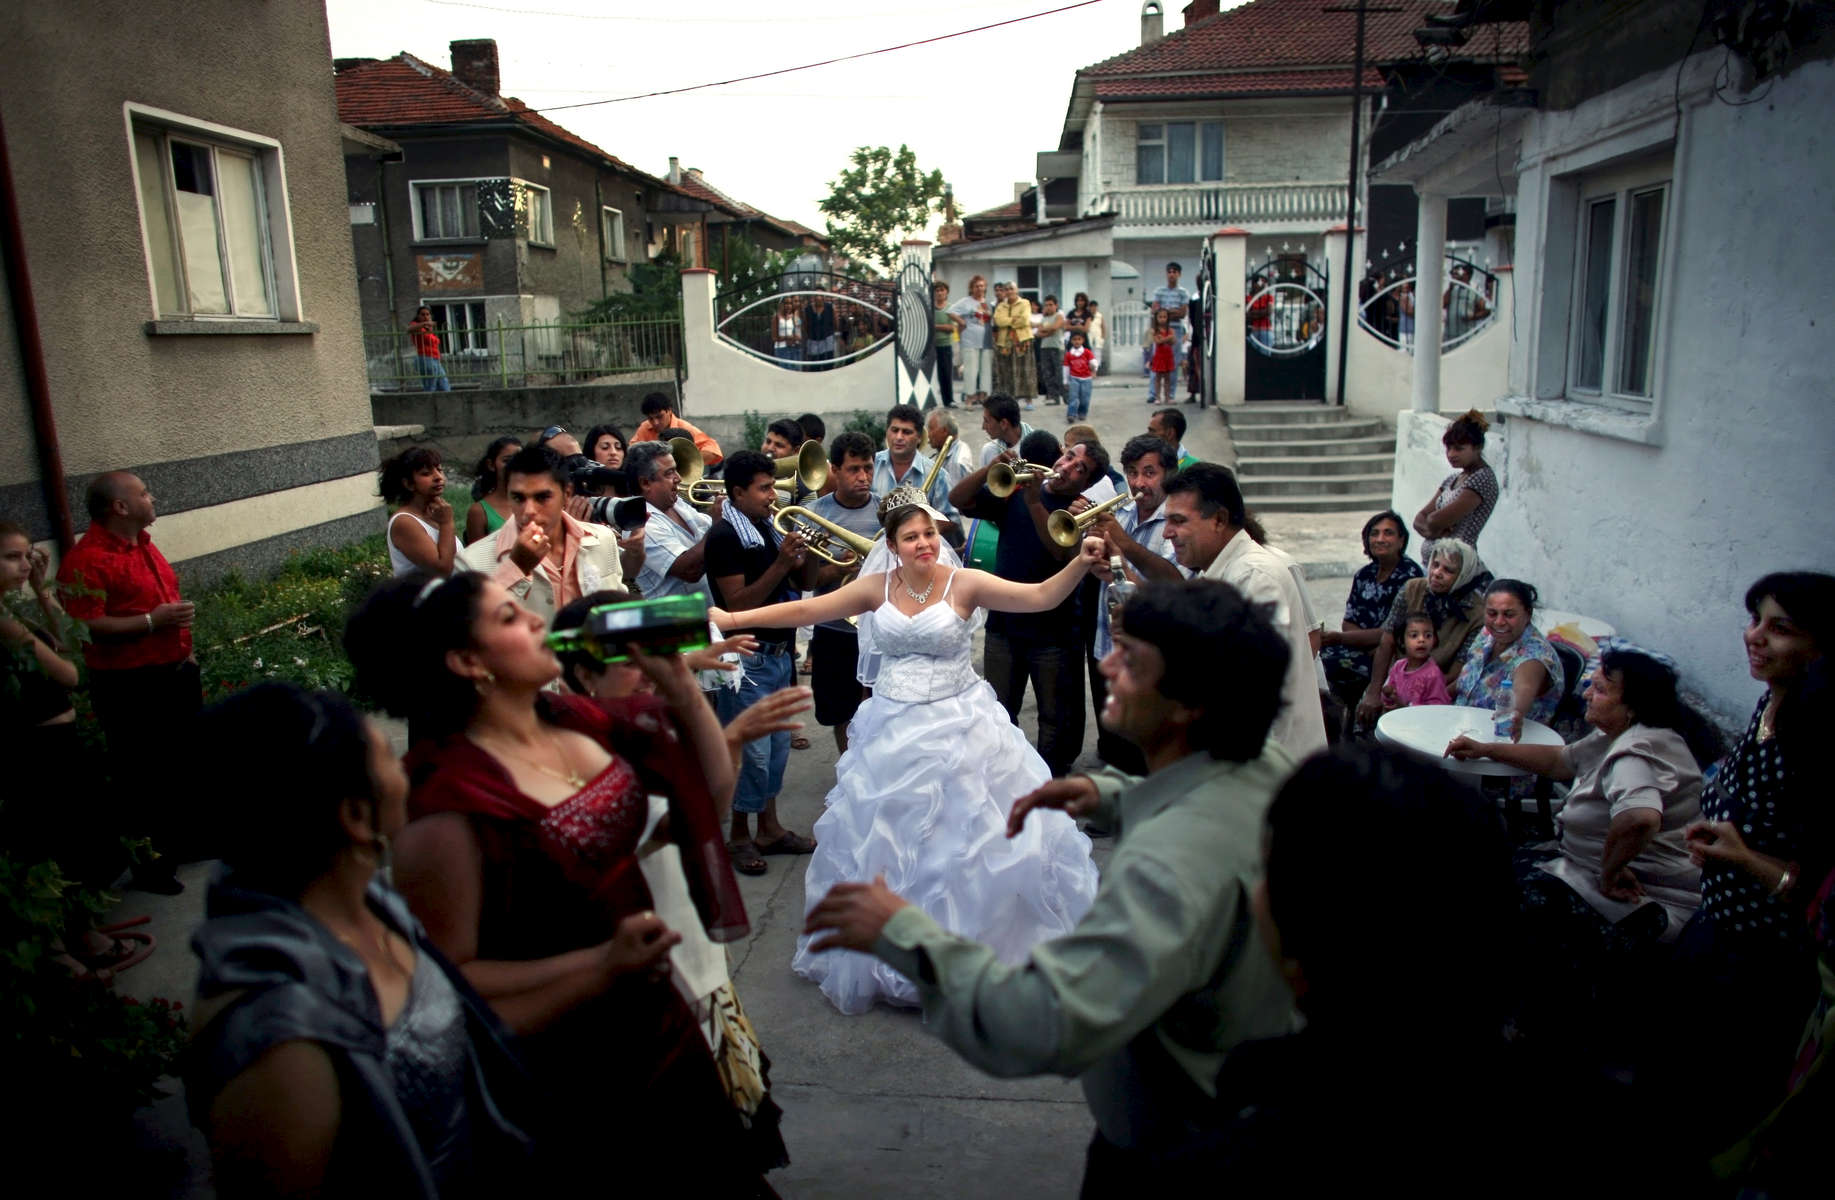 Guests dance during a Roma wedding in Northwest Bulgaria in August 2008.